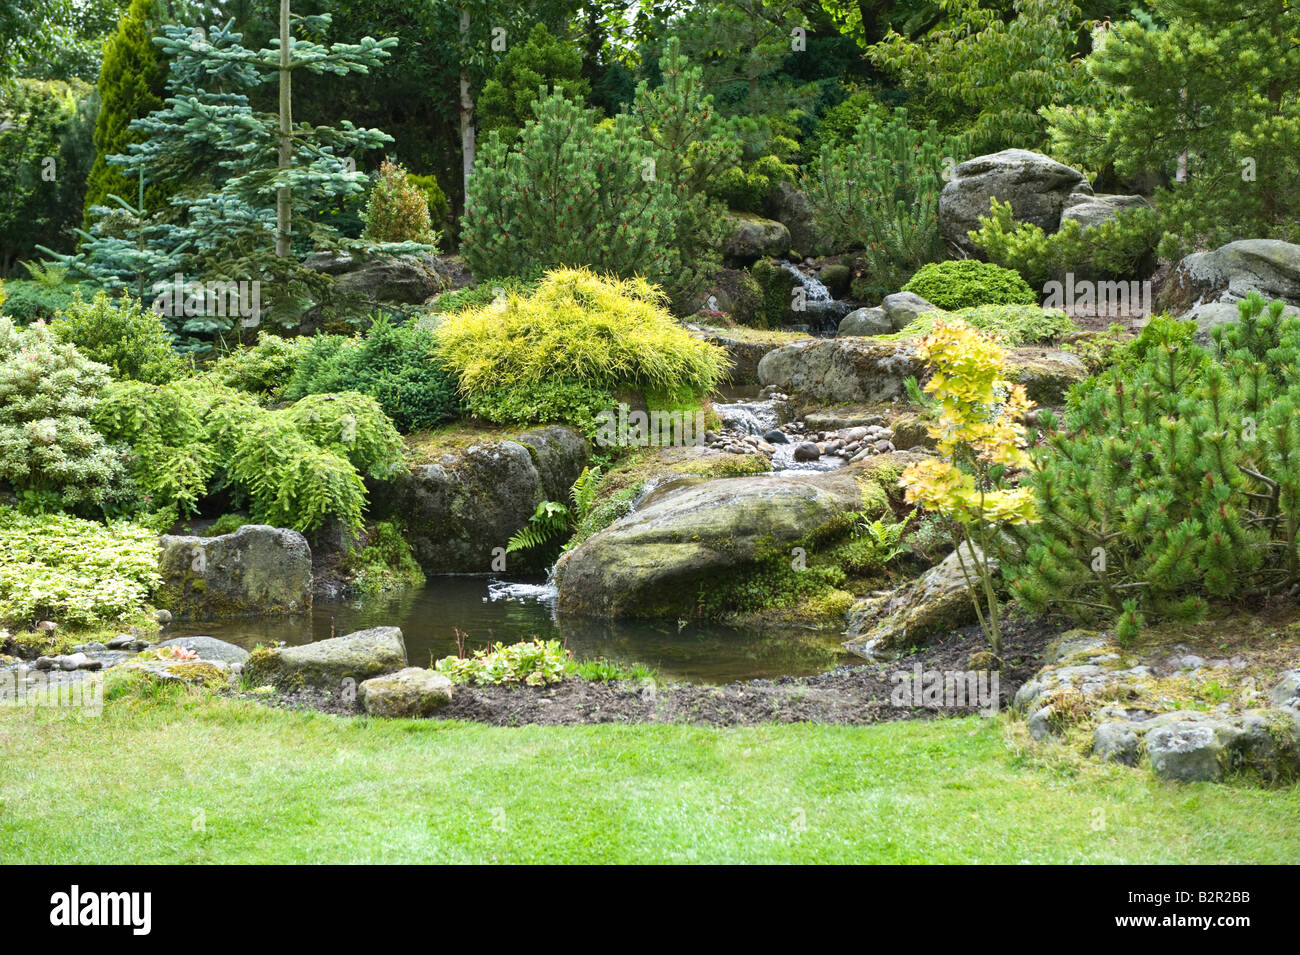 Rock garden with pond, waterfall, shrubs and trees in garden design by Bahaa Seedhom North Yorkshire England May - Stock Image